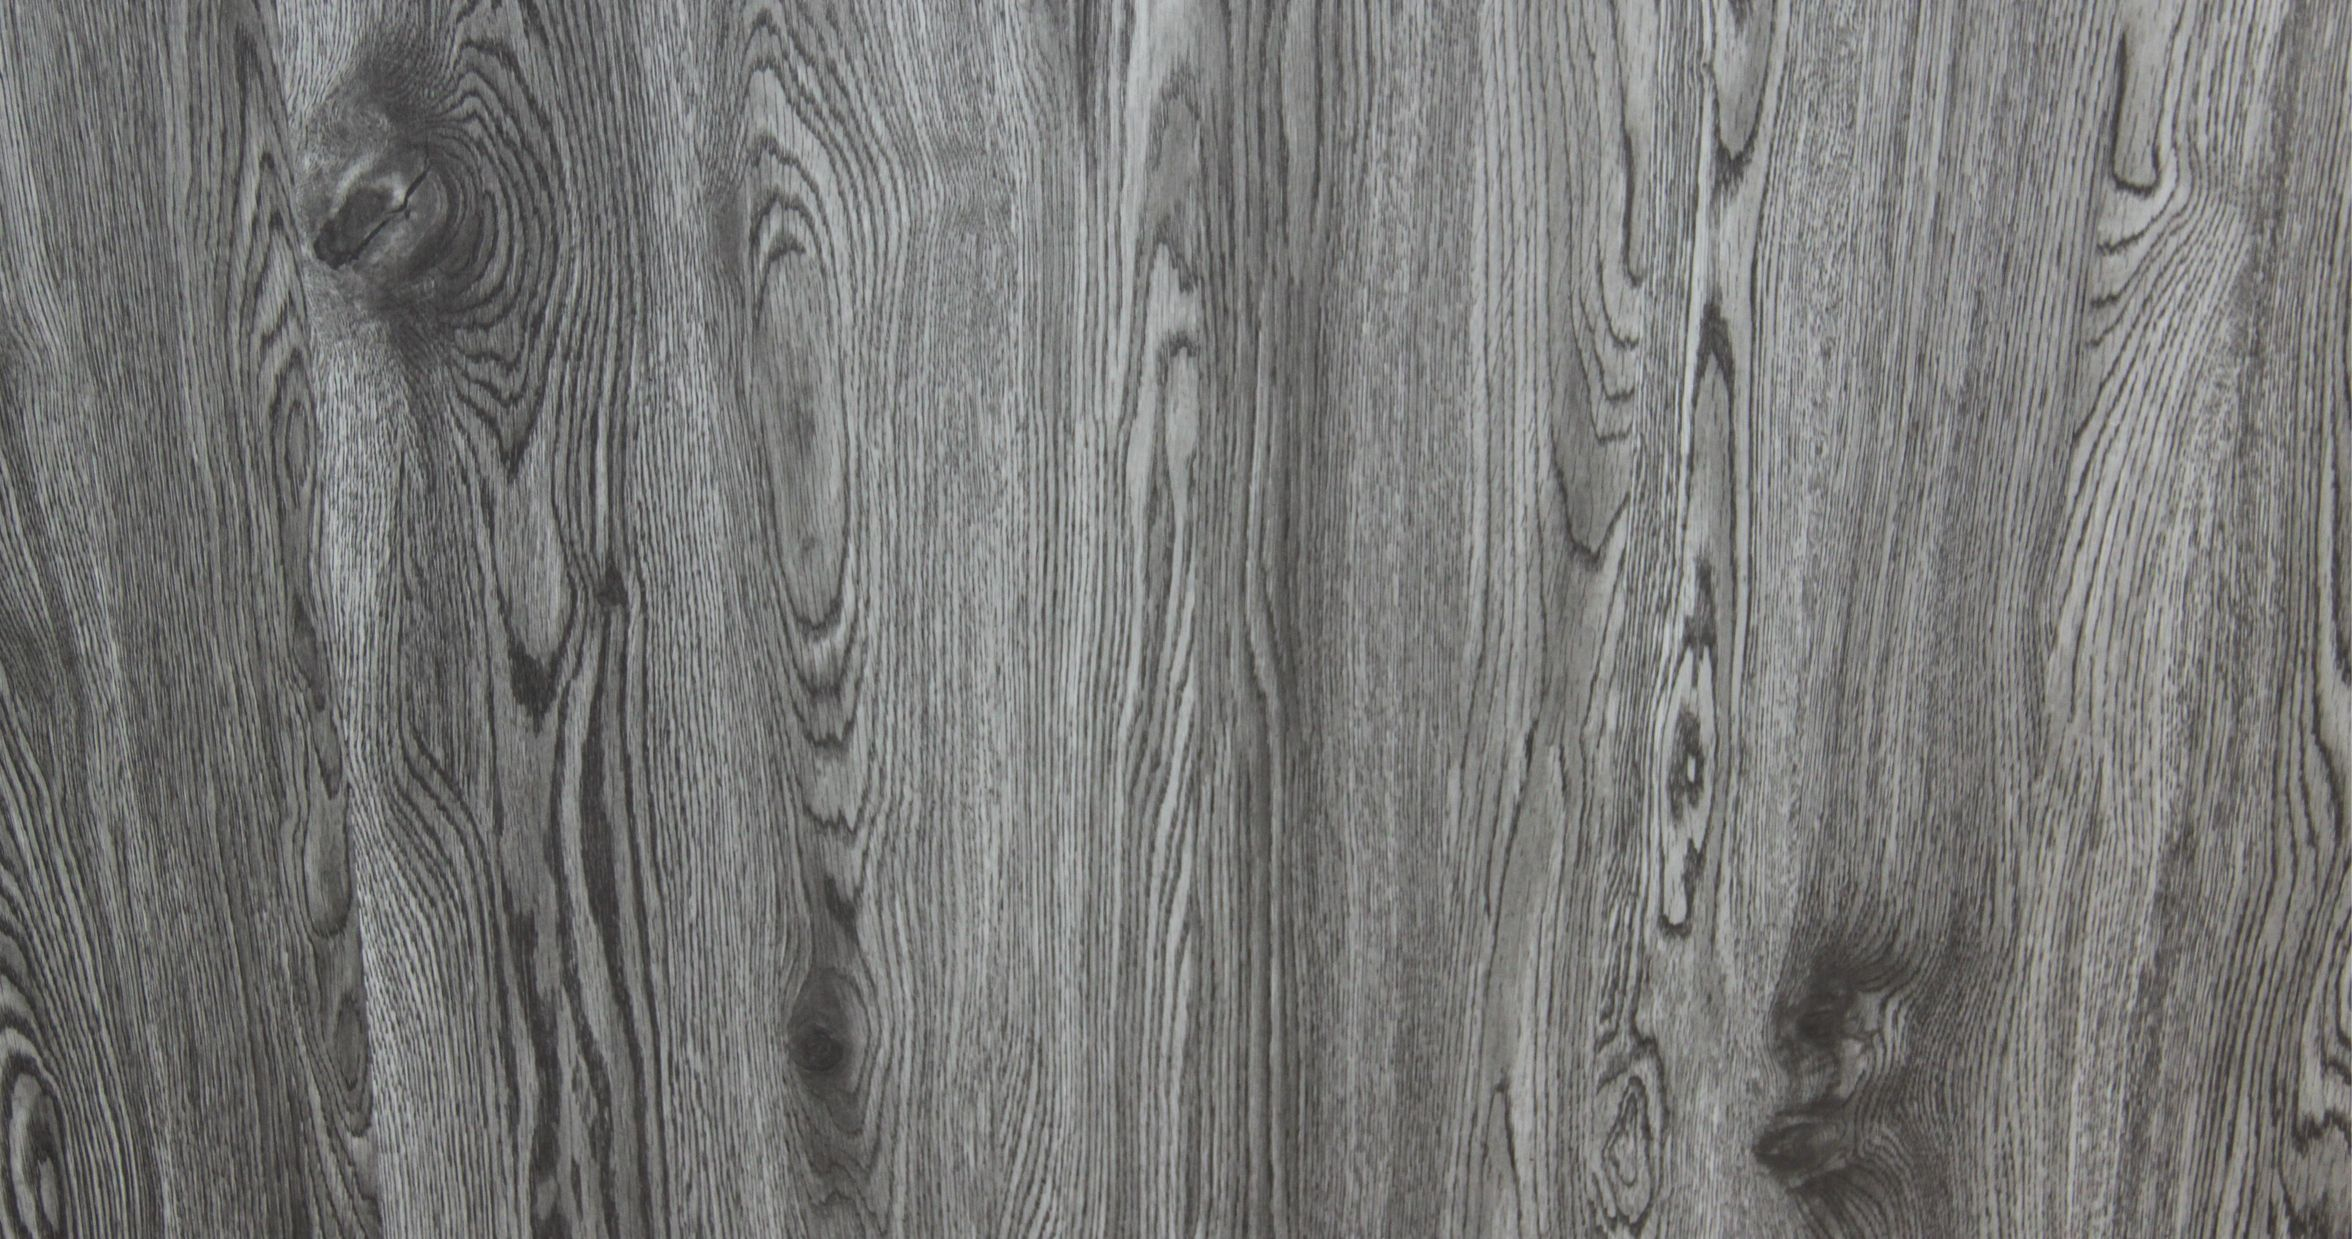 flooring best blonde stain dark alluring taupe parquet to others project stained white diagonal hardwood rated wood gray matte floor oak how for modern your floors look trends engineered make finish ideas